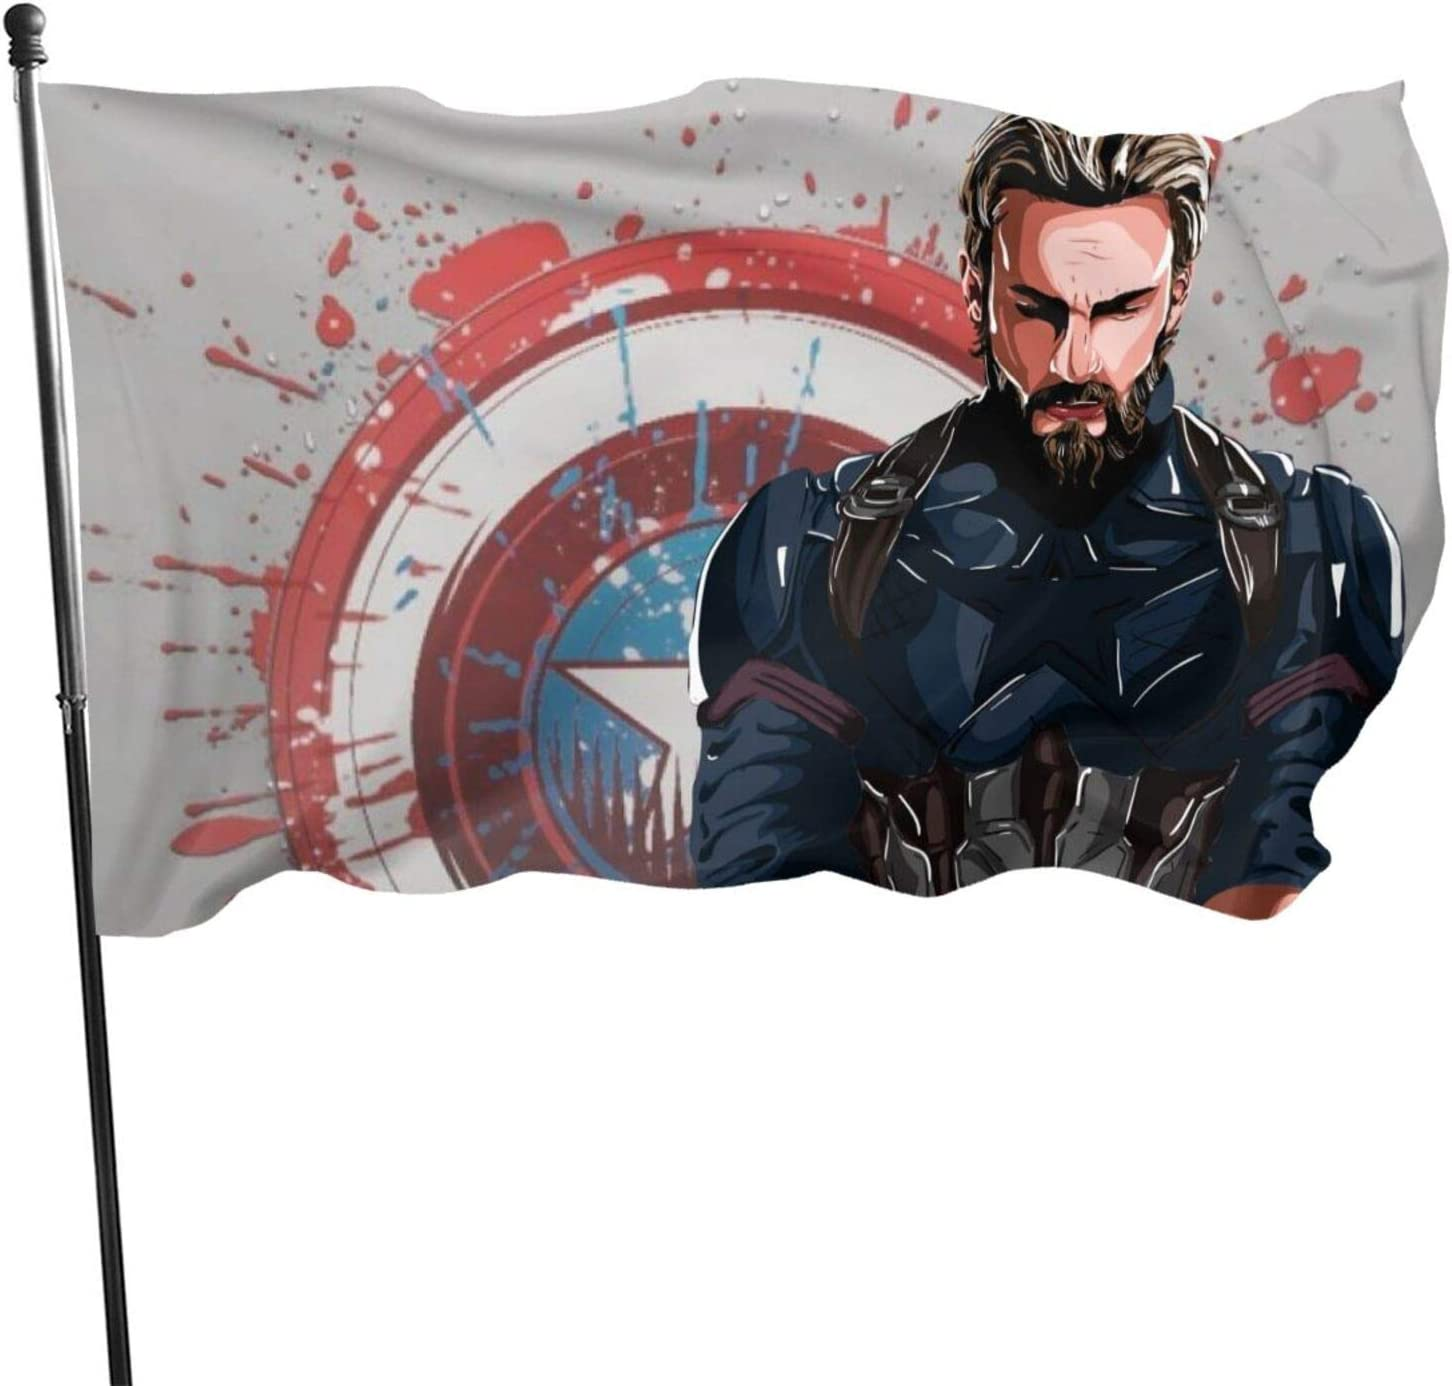 KRR Flag 3x5 ft Decorative Superhero Flags Make Charming Decorations for Any Backyard Or Lawn One Size